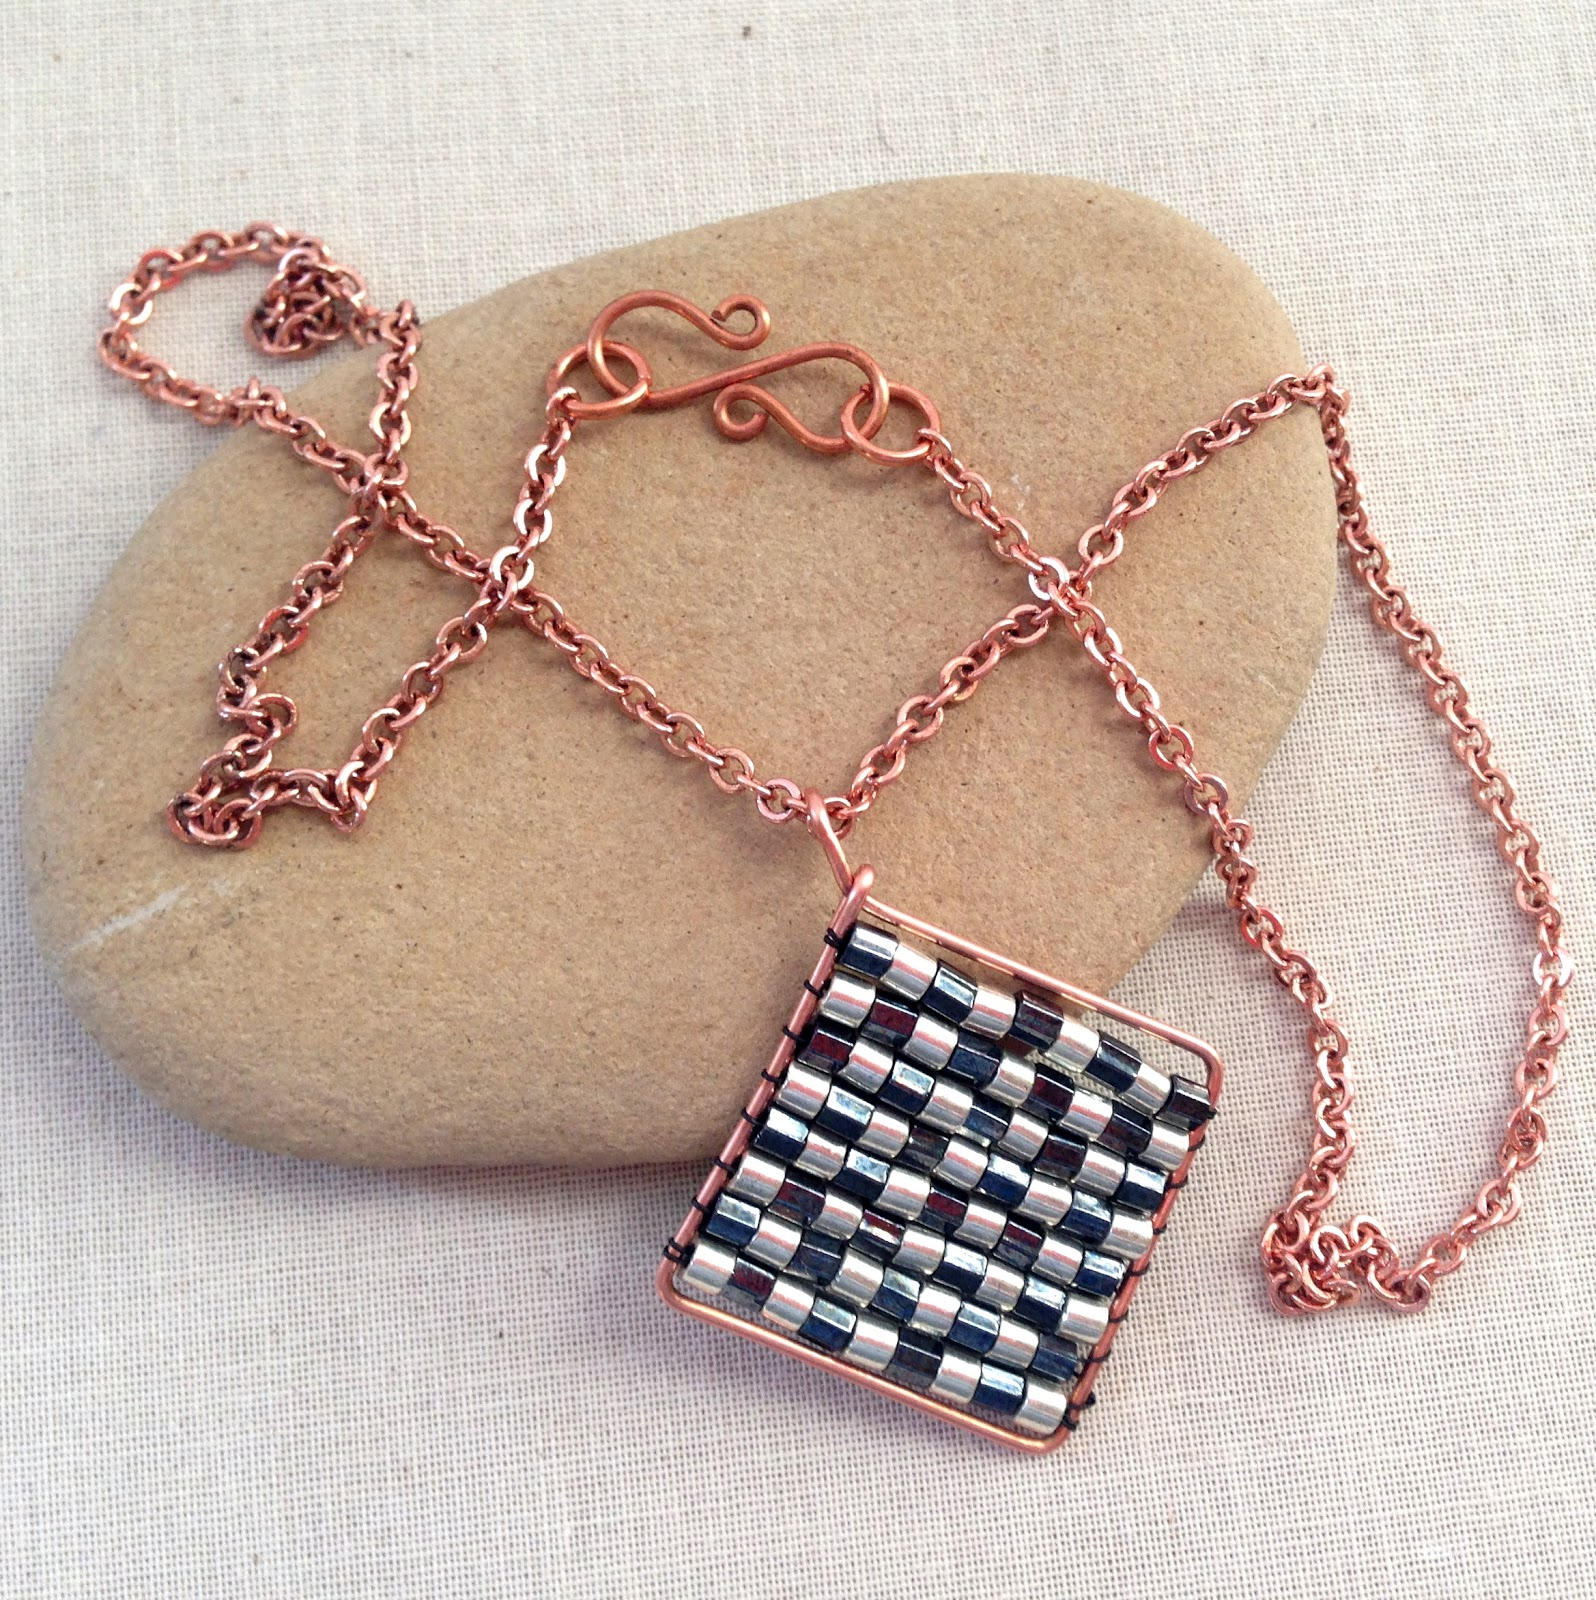 Lisa yangs jewelry blog how to make a diamond shape wire frame for harlequin diamond beaded pendant free tutorial aloadofball Image collections